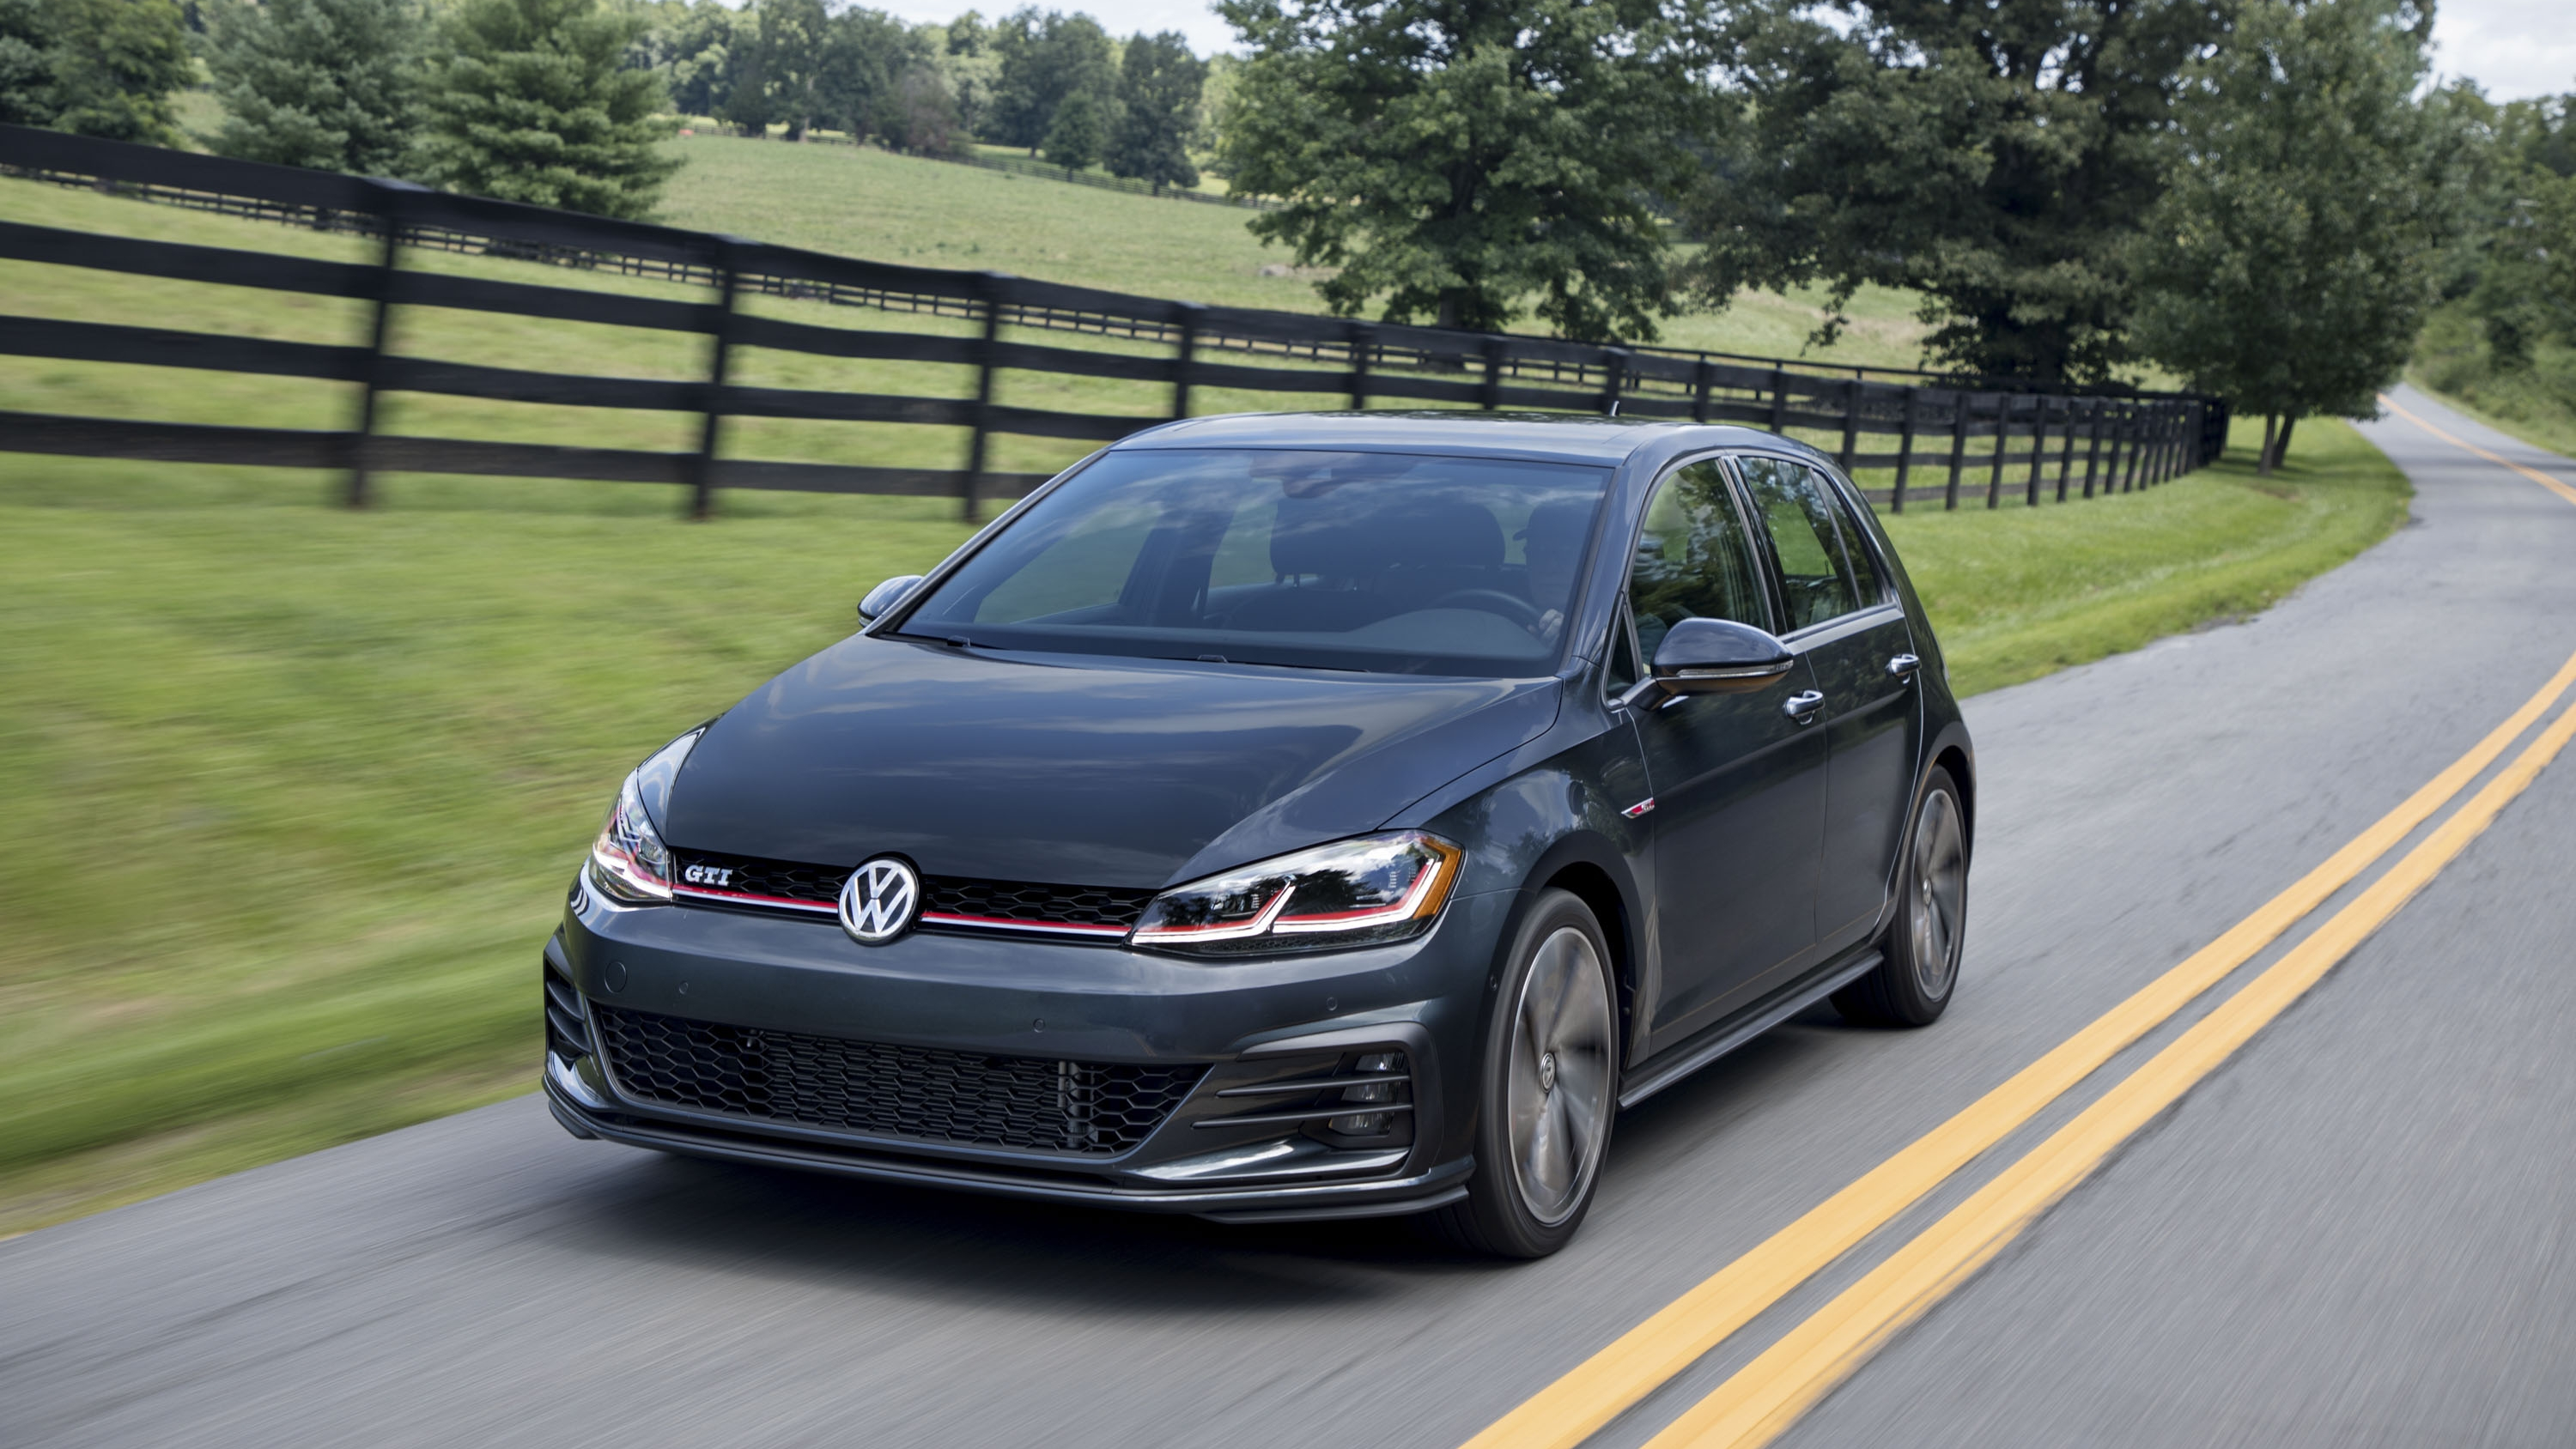 2018 Volkswagen Golf Facelift Launched In The U.S ...